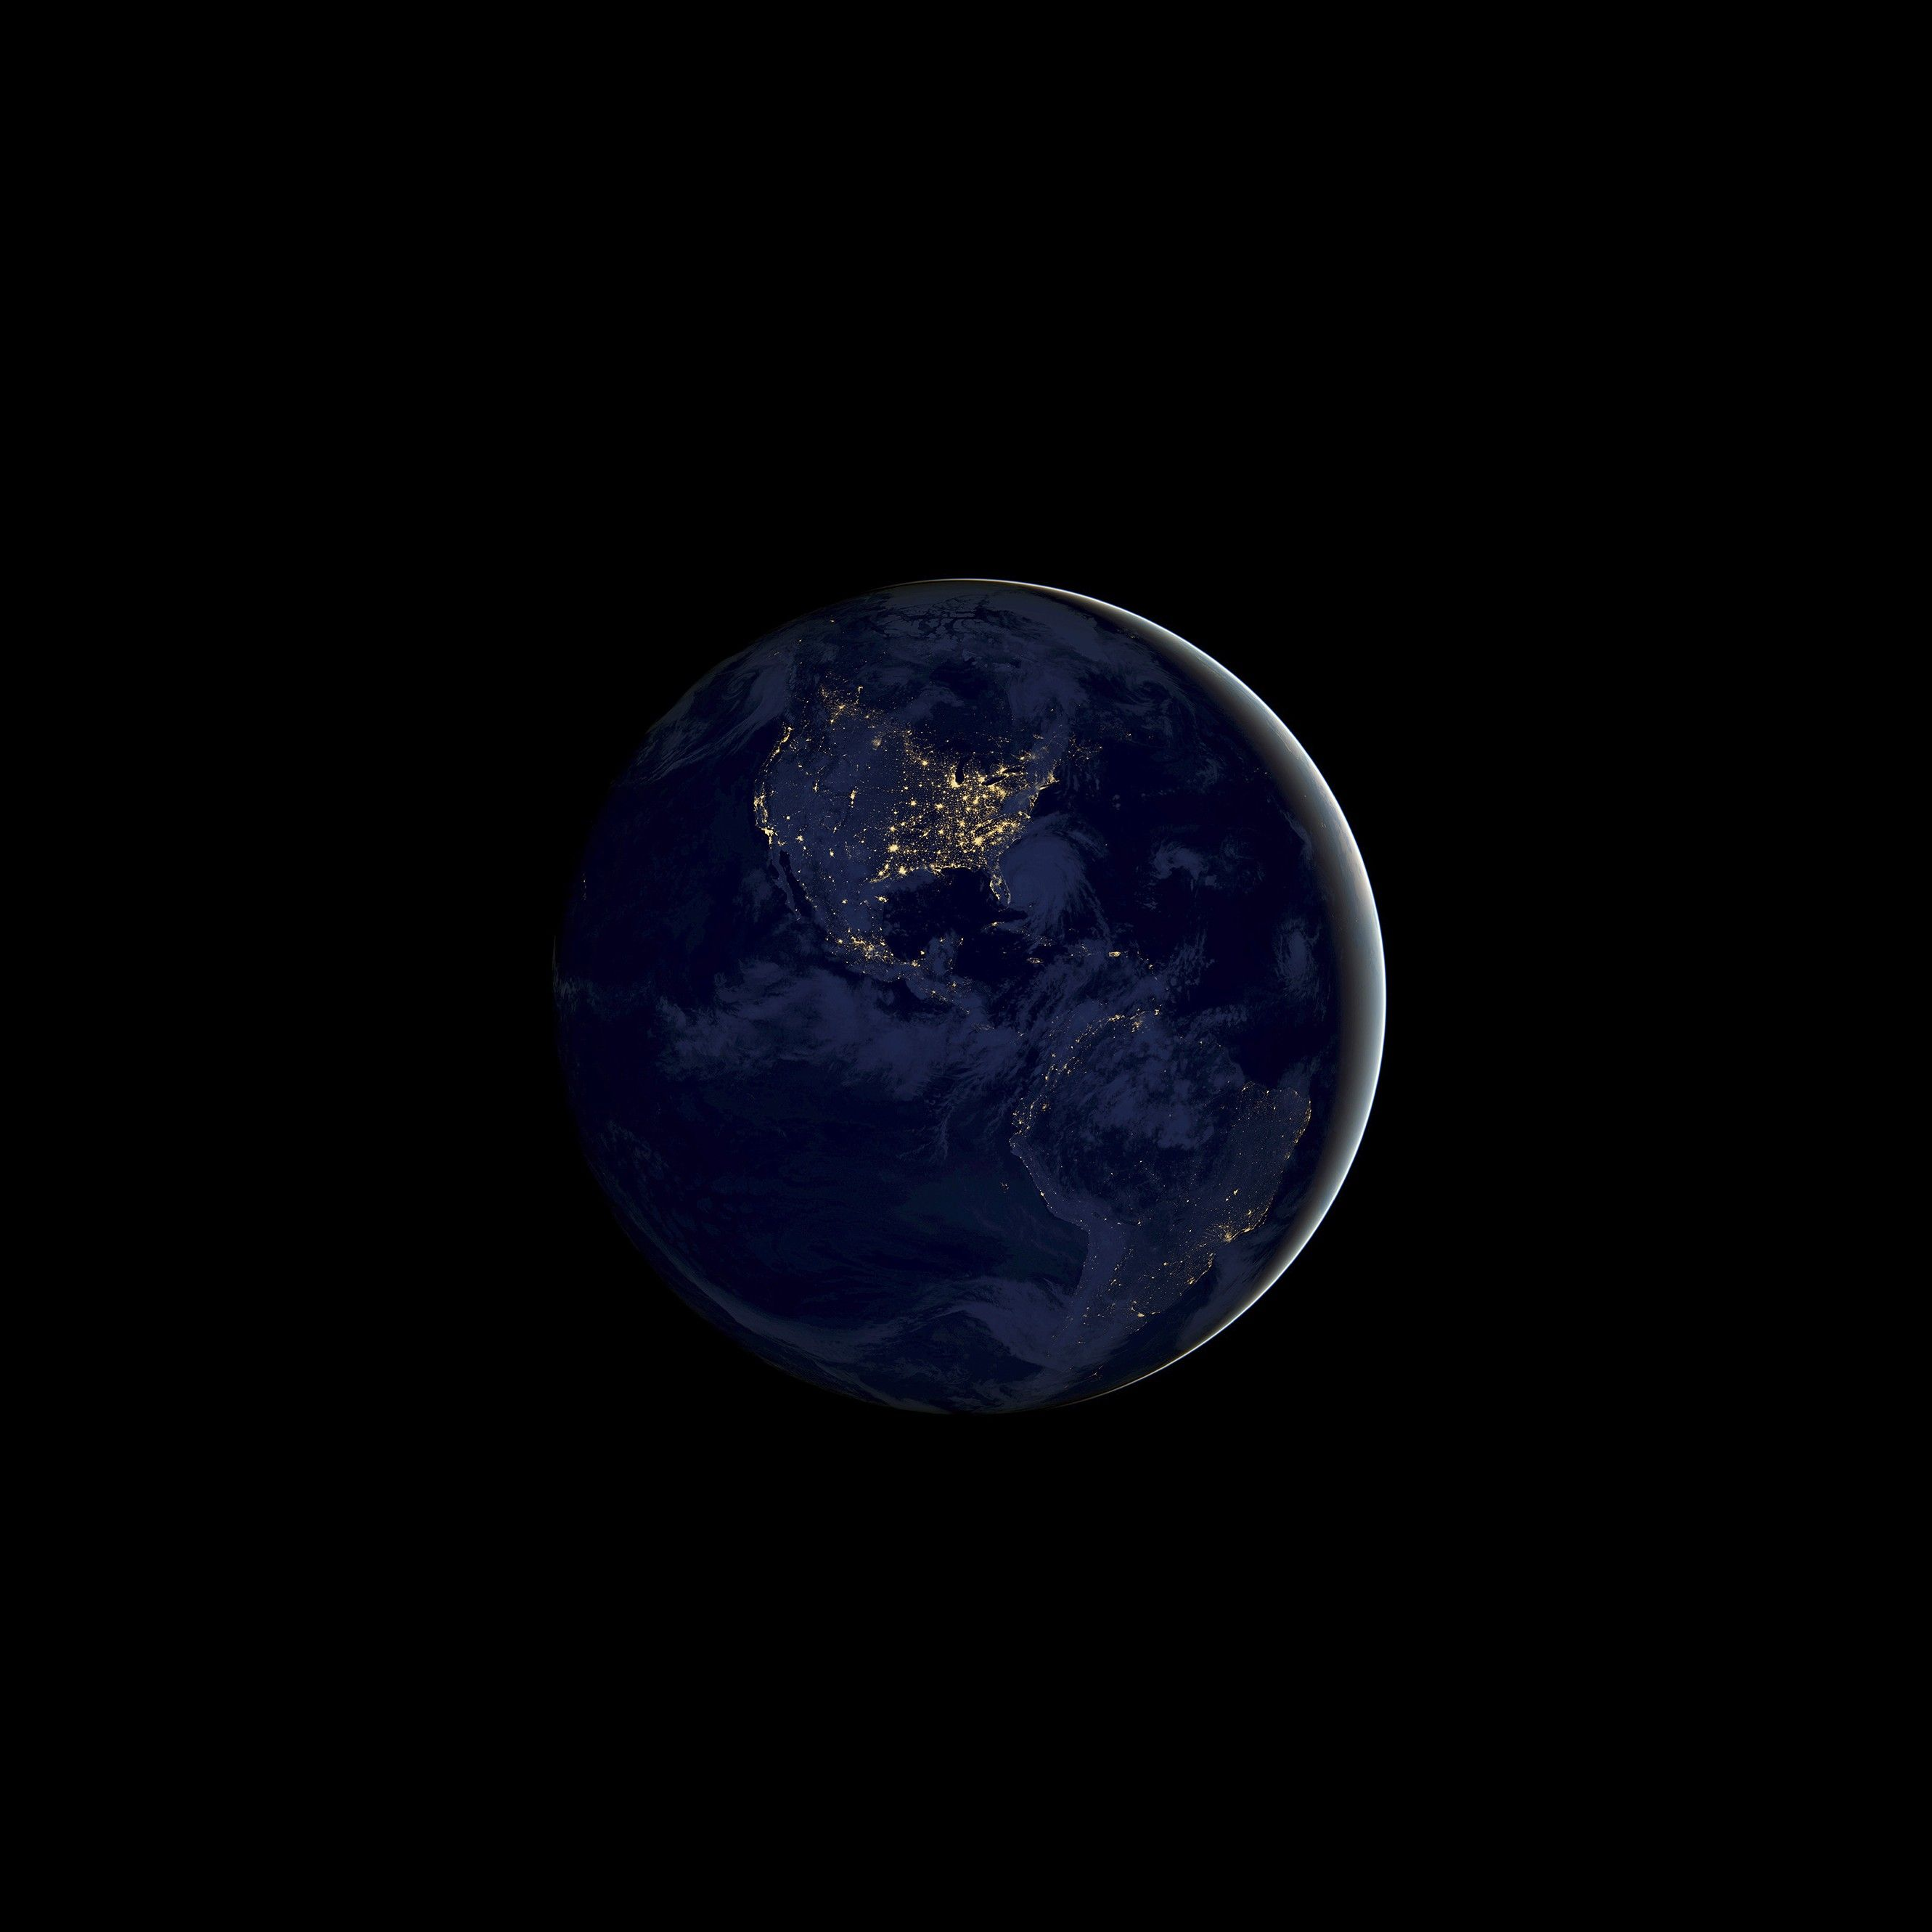 Earth Night Tap To See More Ios 11 Hd Wallpapers Mobile9 Ios 11 Wallpaper Iphone Wallpaper Earth Wallpaper Earth